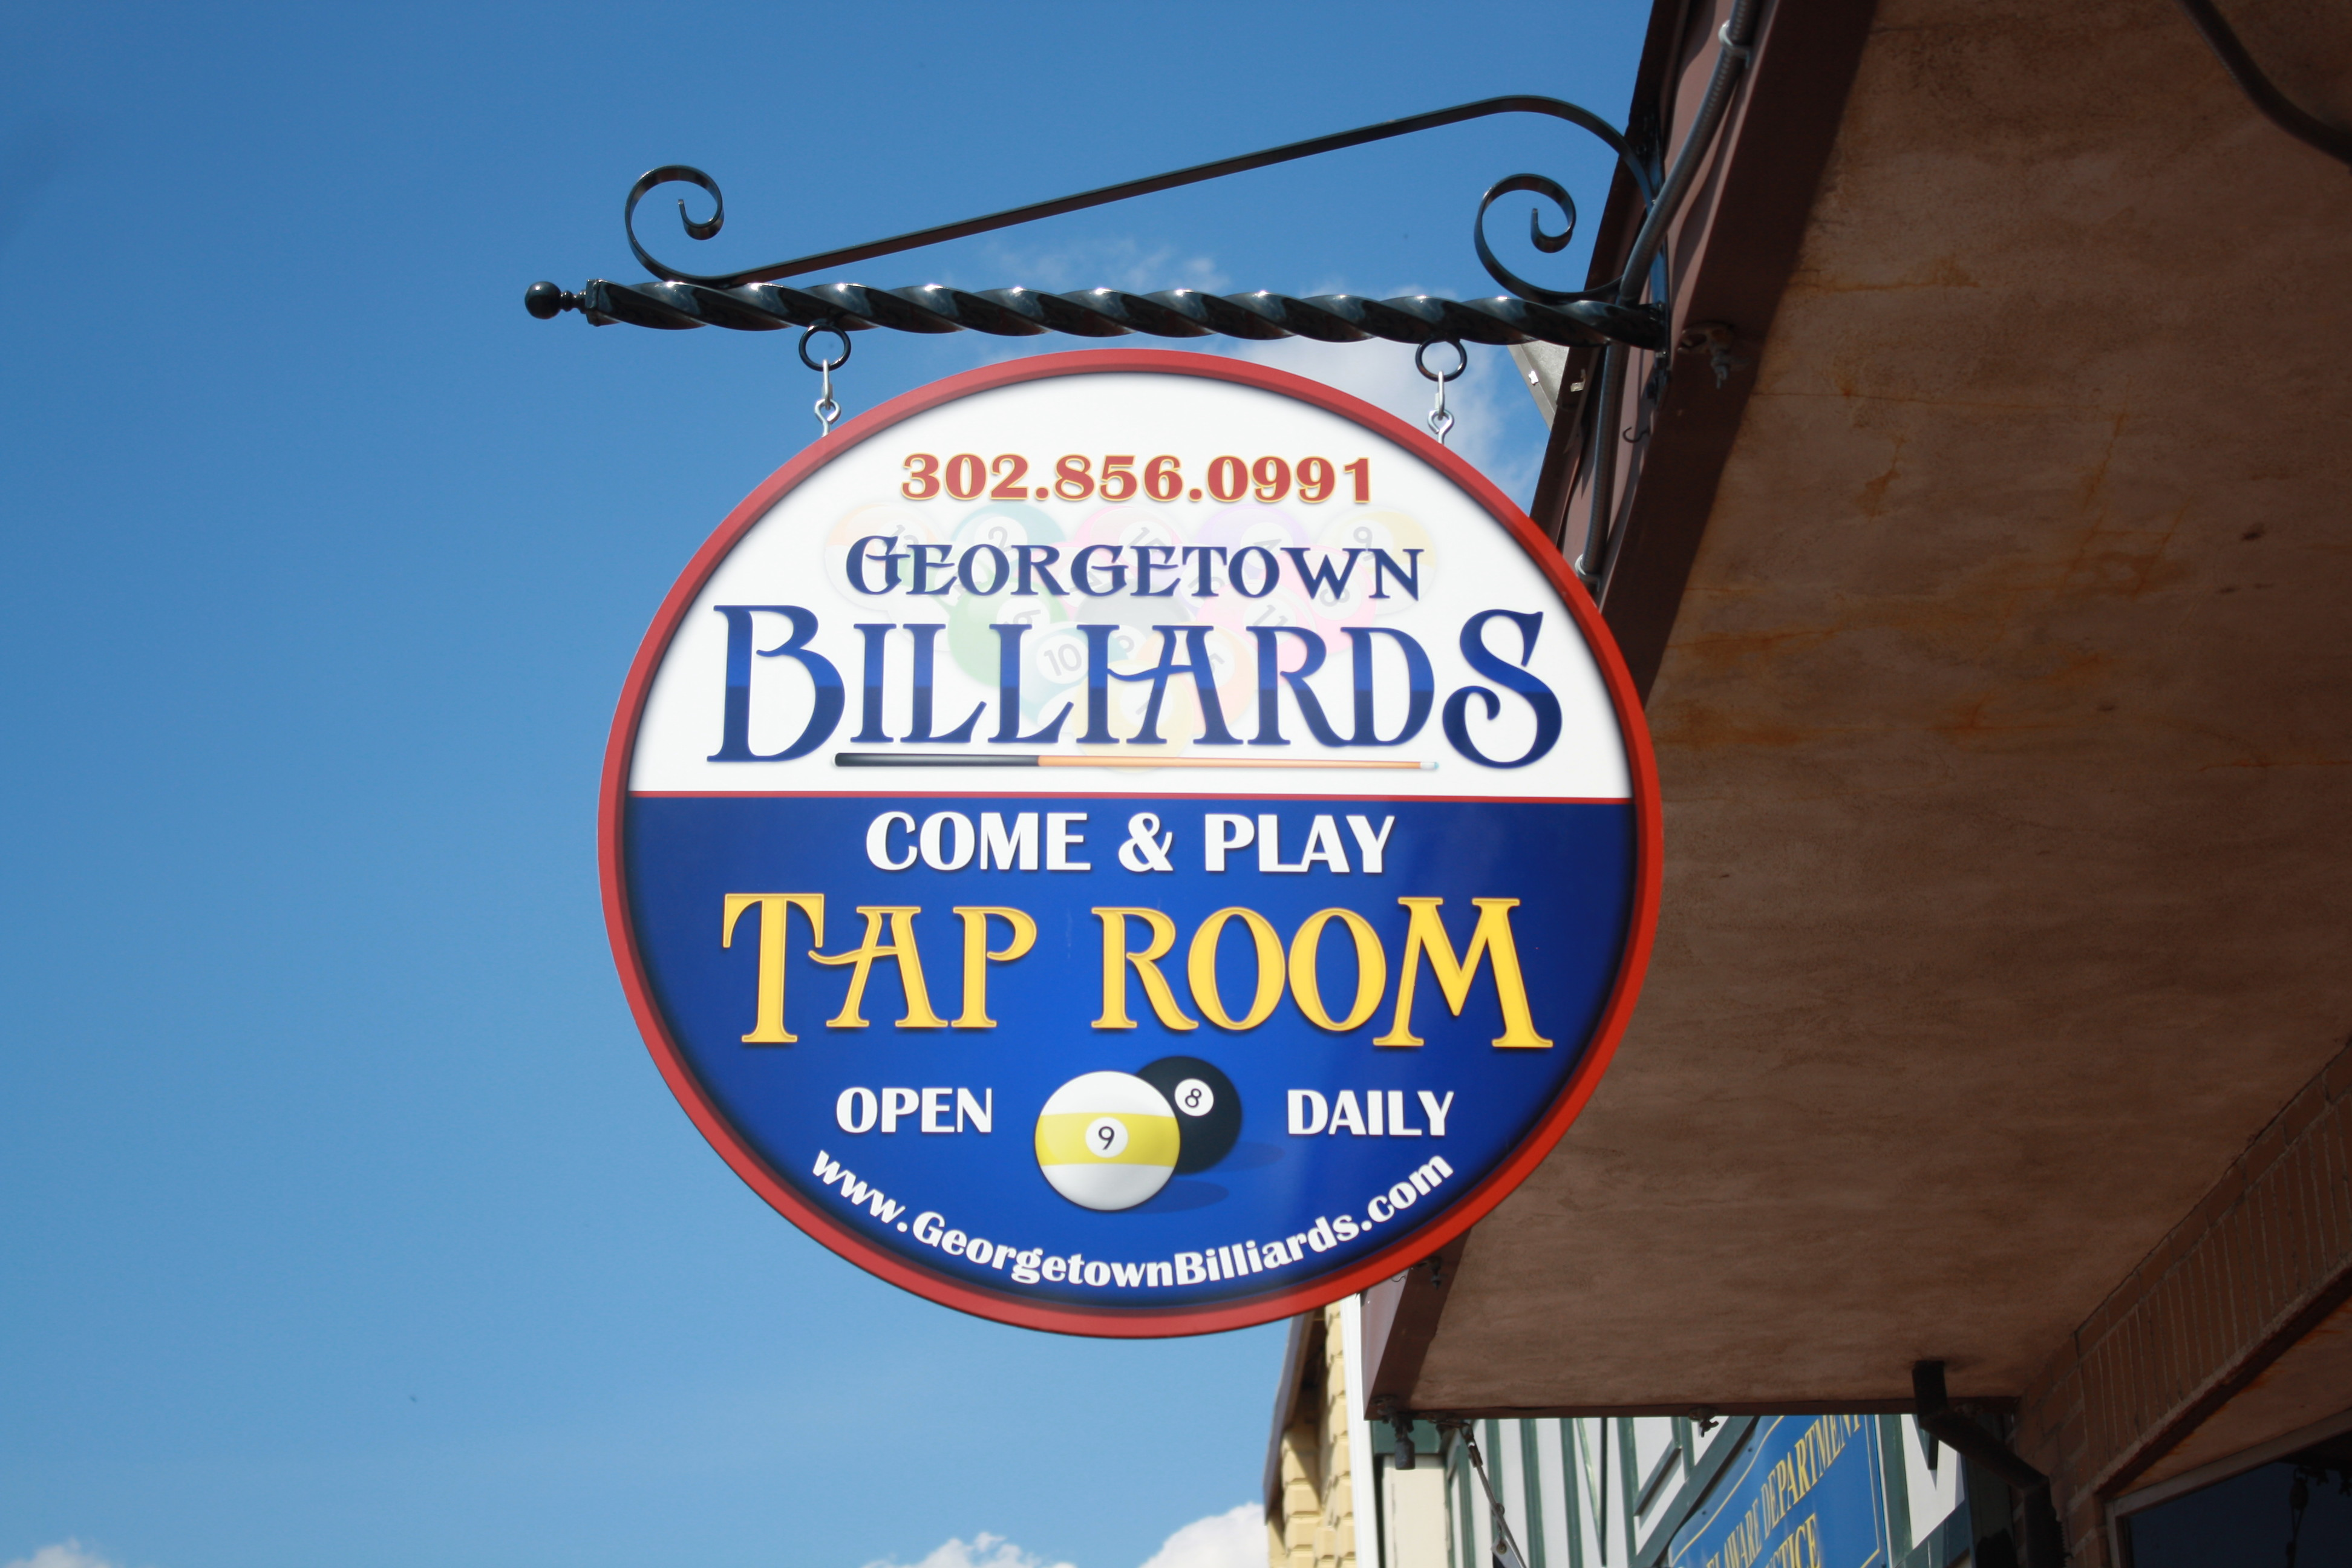 Georgetown Billiards